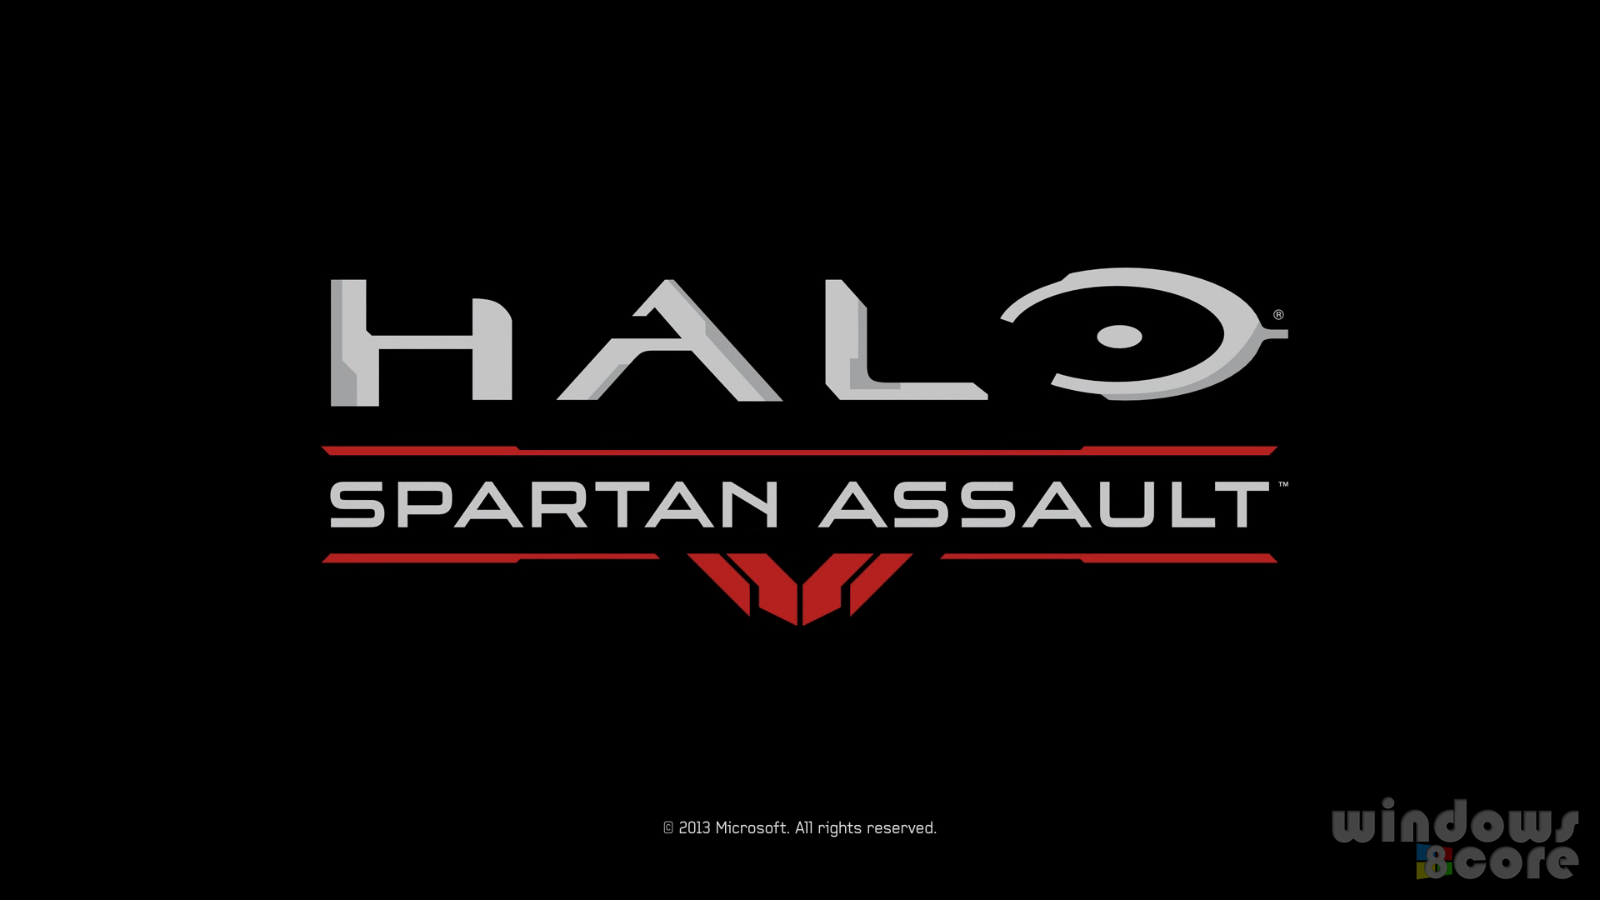 Halo Spartan Assault Lite For Windows 8 Rt 8 1 Is Now Free In Store Gameplay Video Halo Spartan Xbox One Games Halo Game